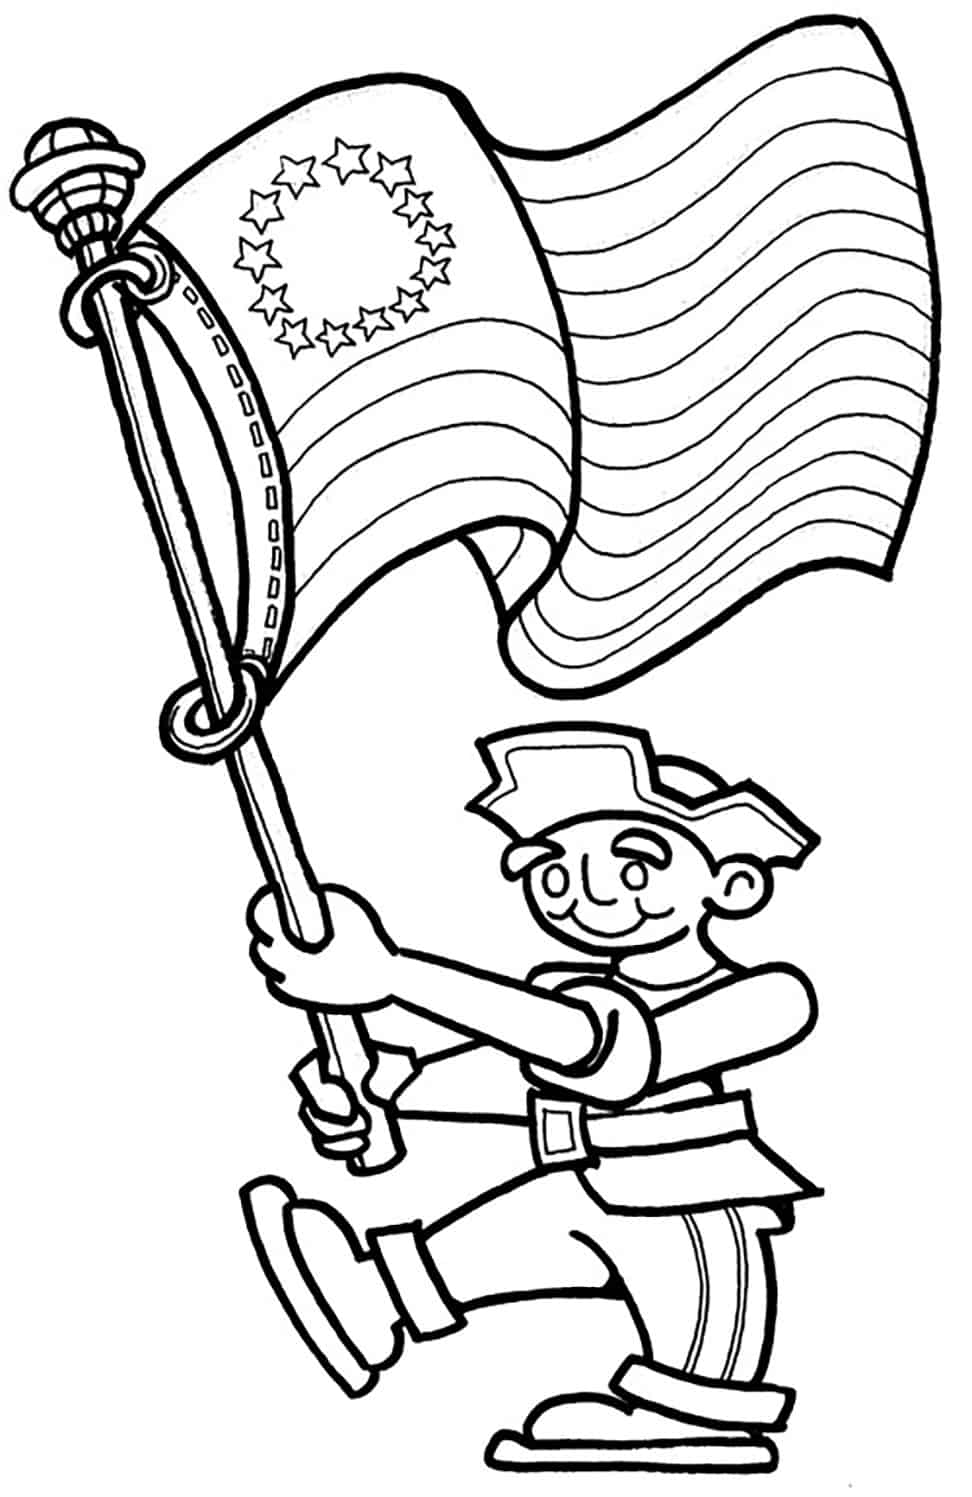 july 4 coloring pages free printable 4th of july coloring pages pages coloring july 4